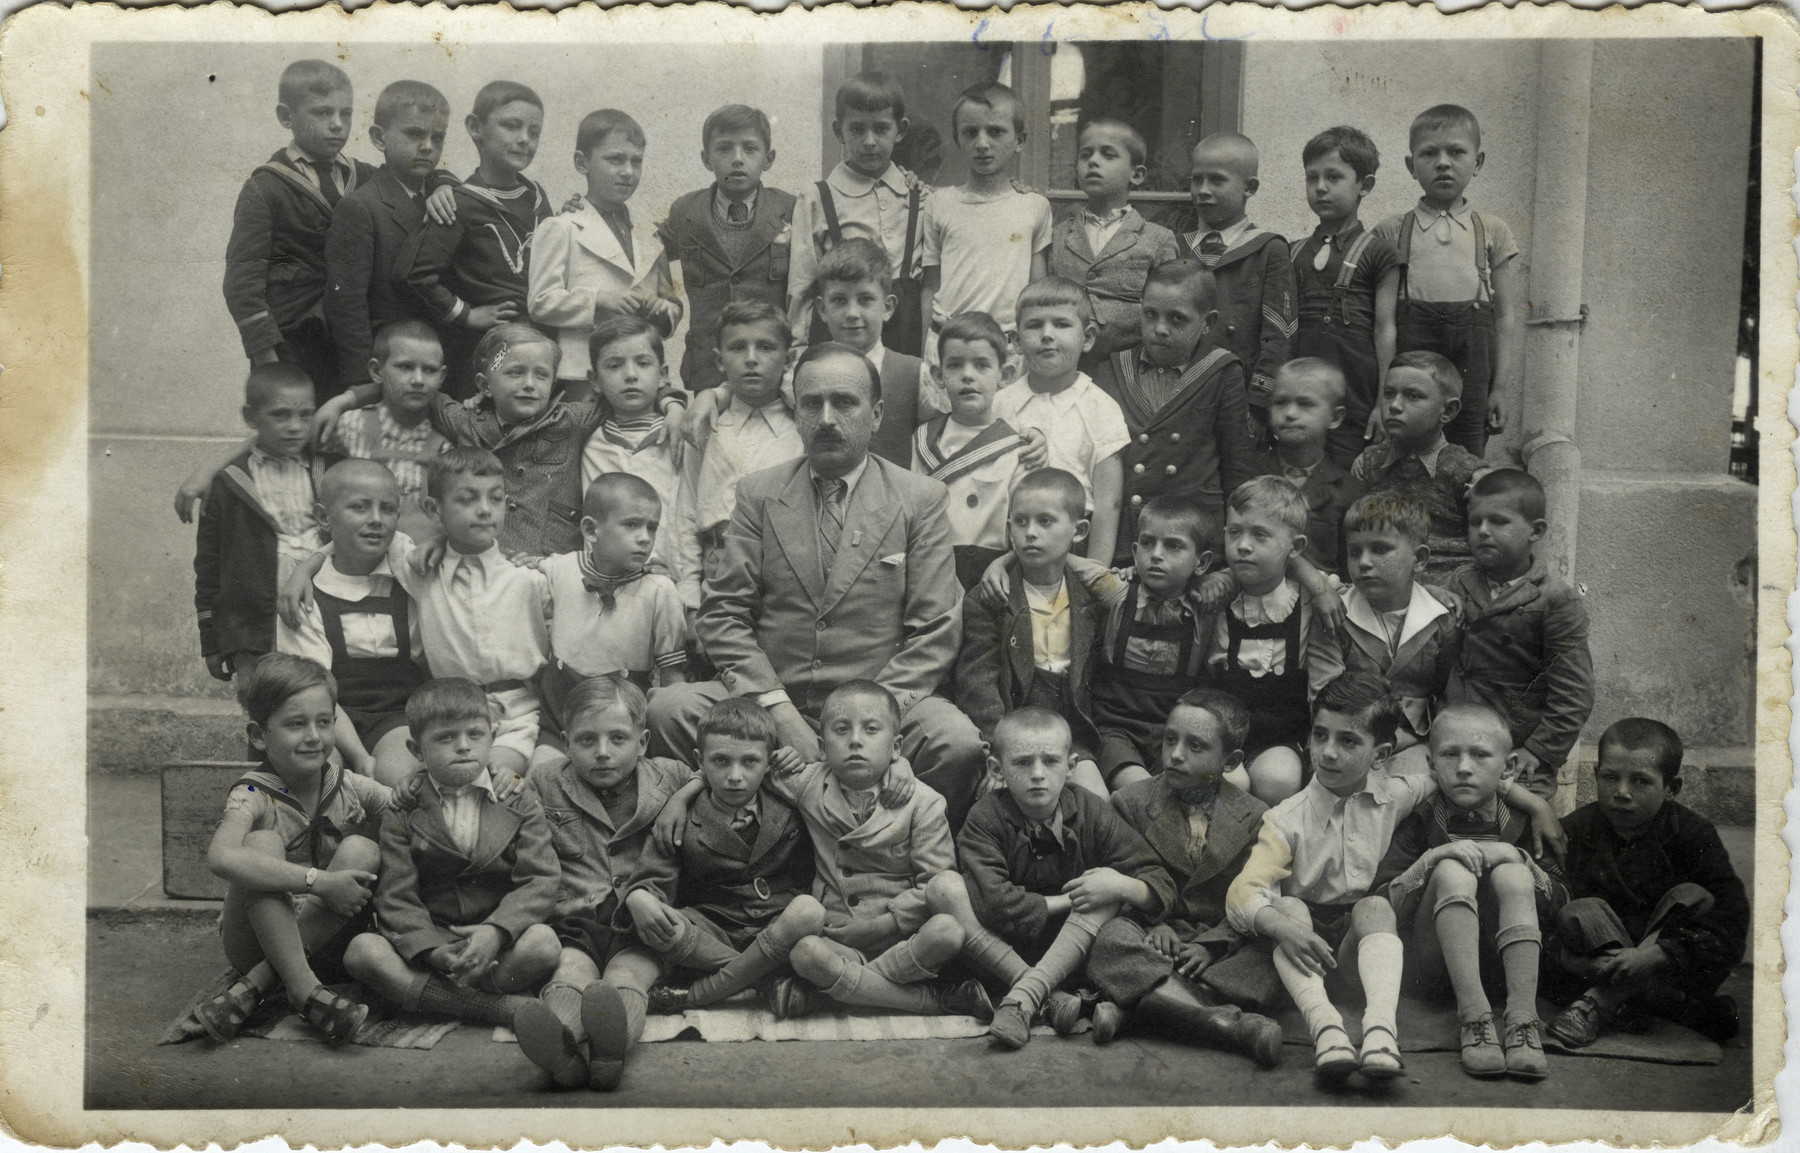 A picture of school children in Belgrade prior to the war.   Joseph (third from the right in the front row) is pictured along with his classmates and teacher who was heroic and would not let Germans know which children were Jewish.